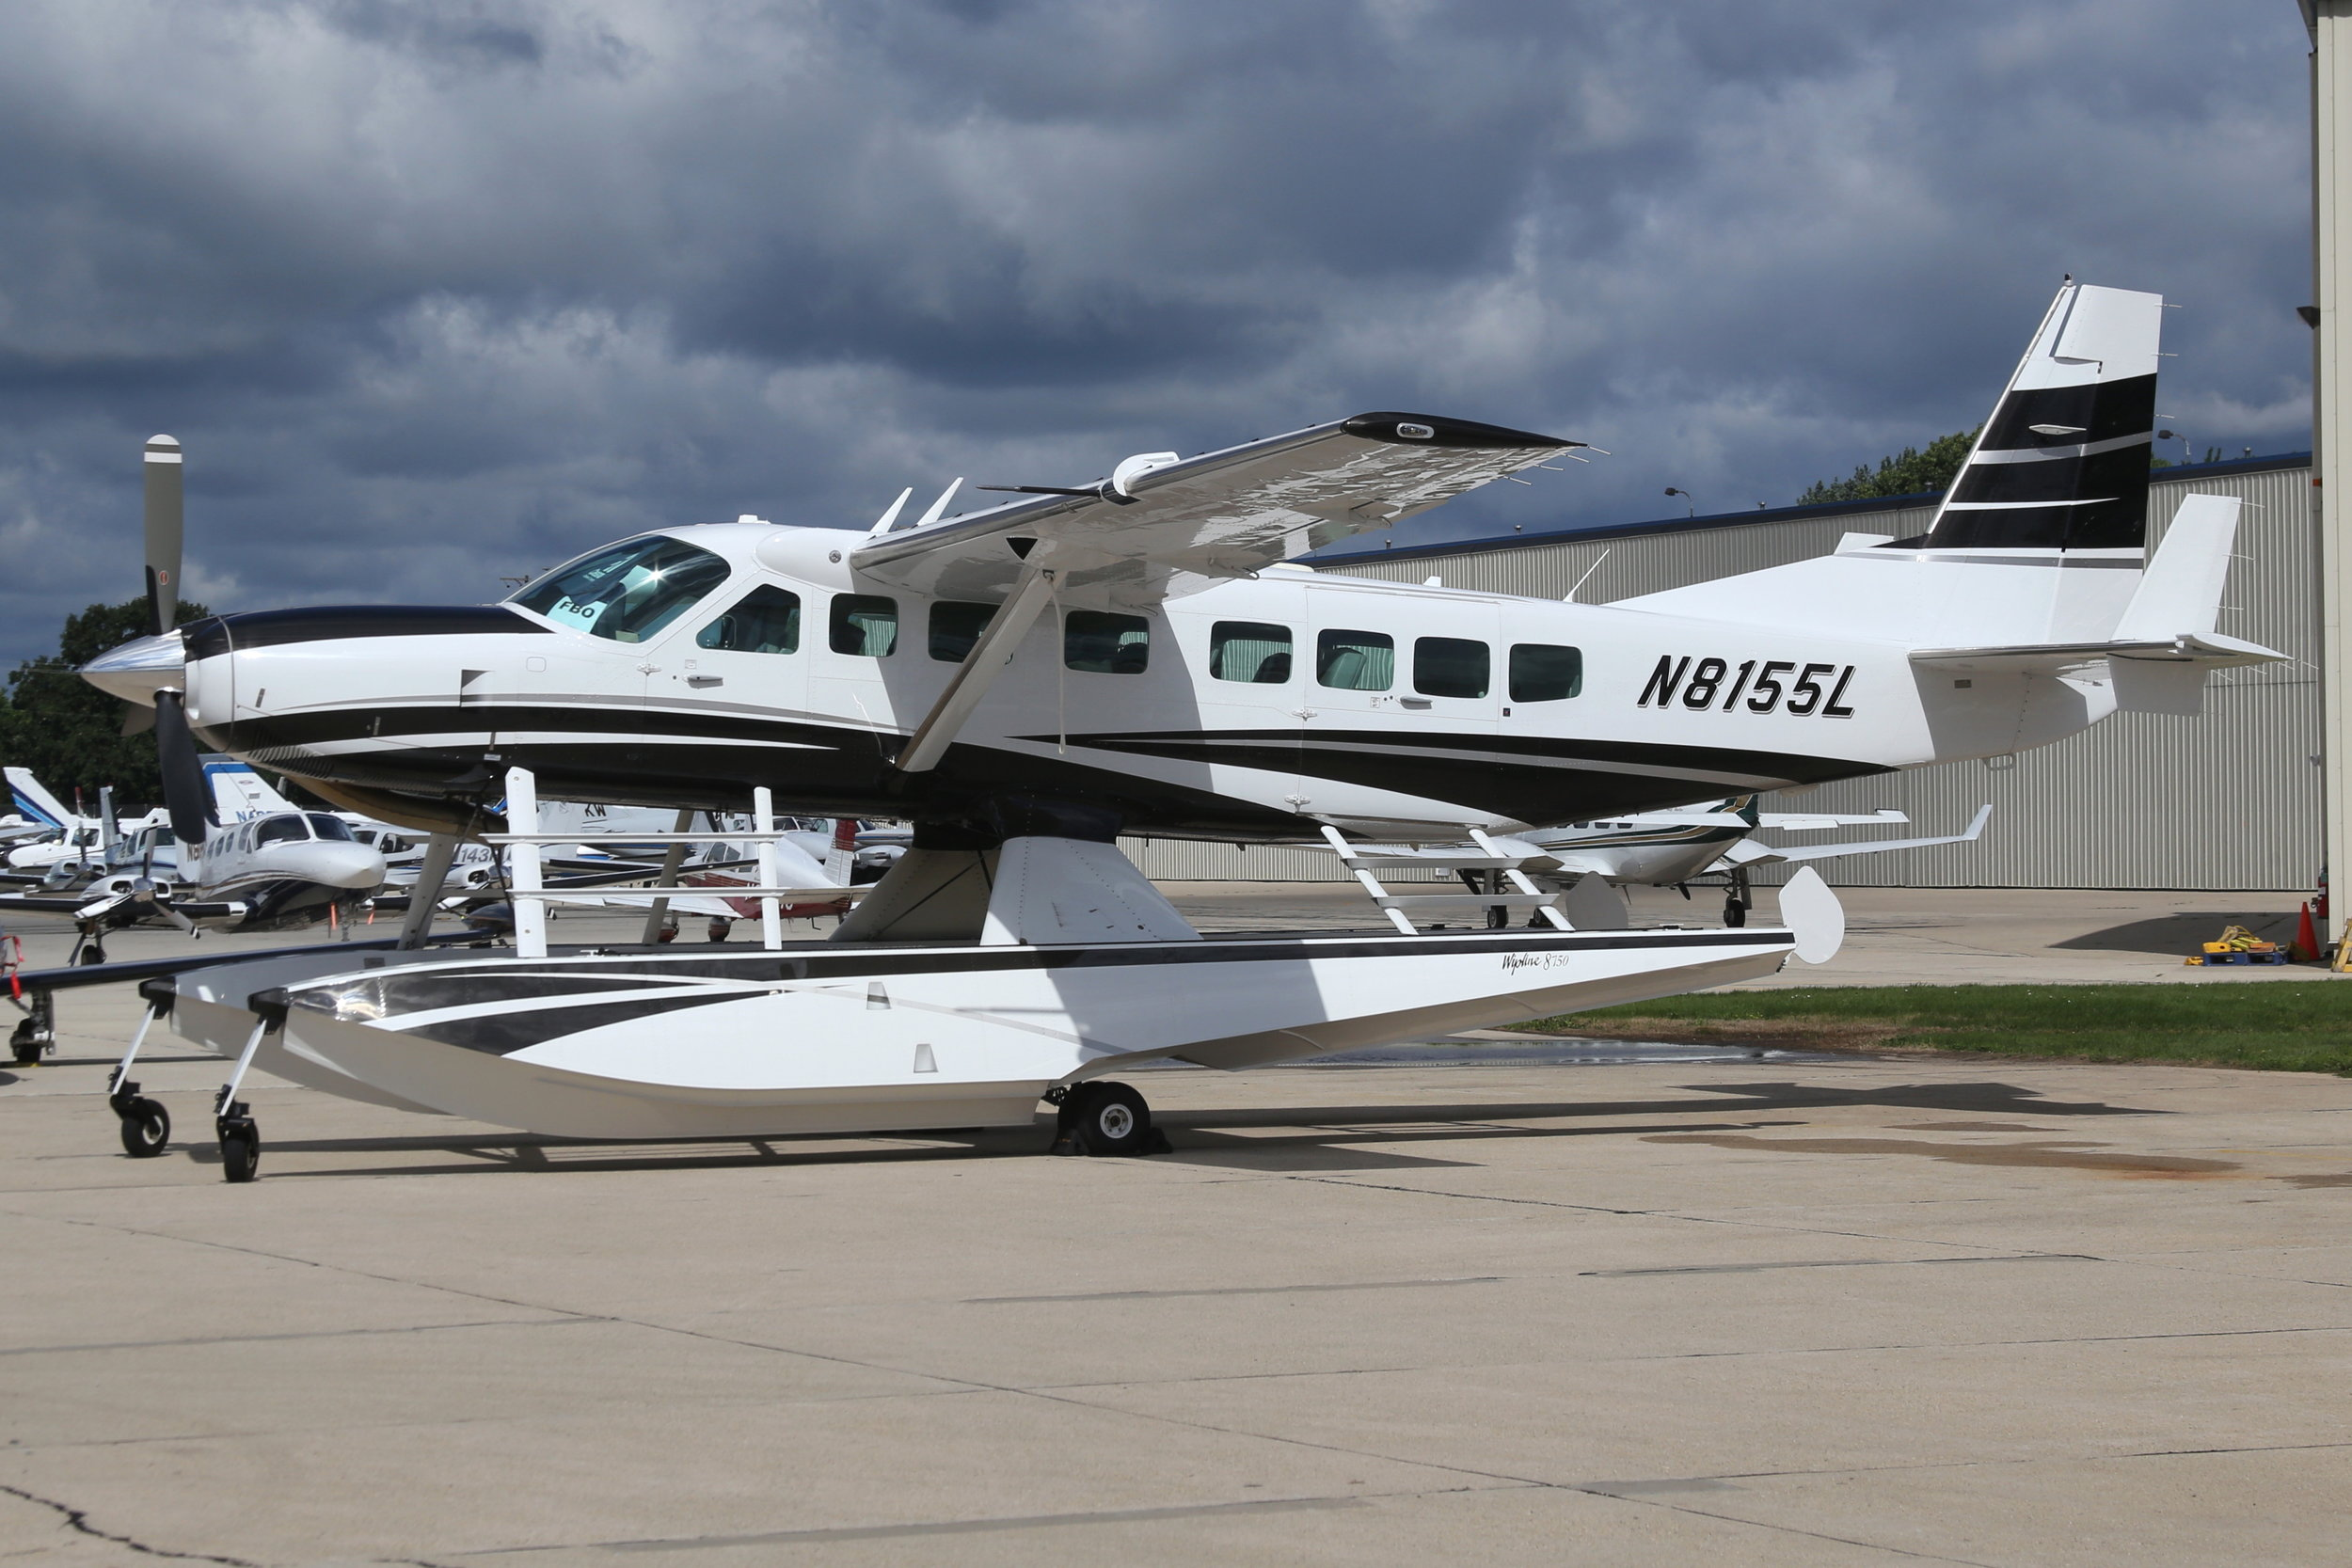 N8155L Cessna Aircraft Co. Cessna 208F taken at Whitman Regional Airport 26th July 2018 by John Wood